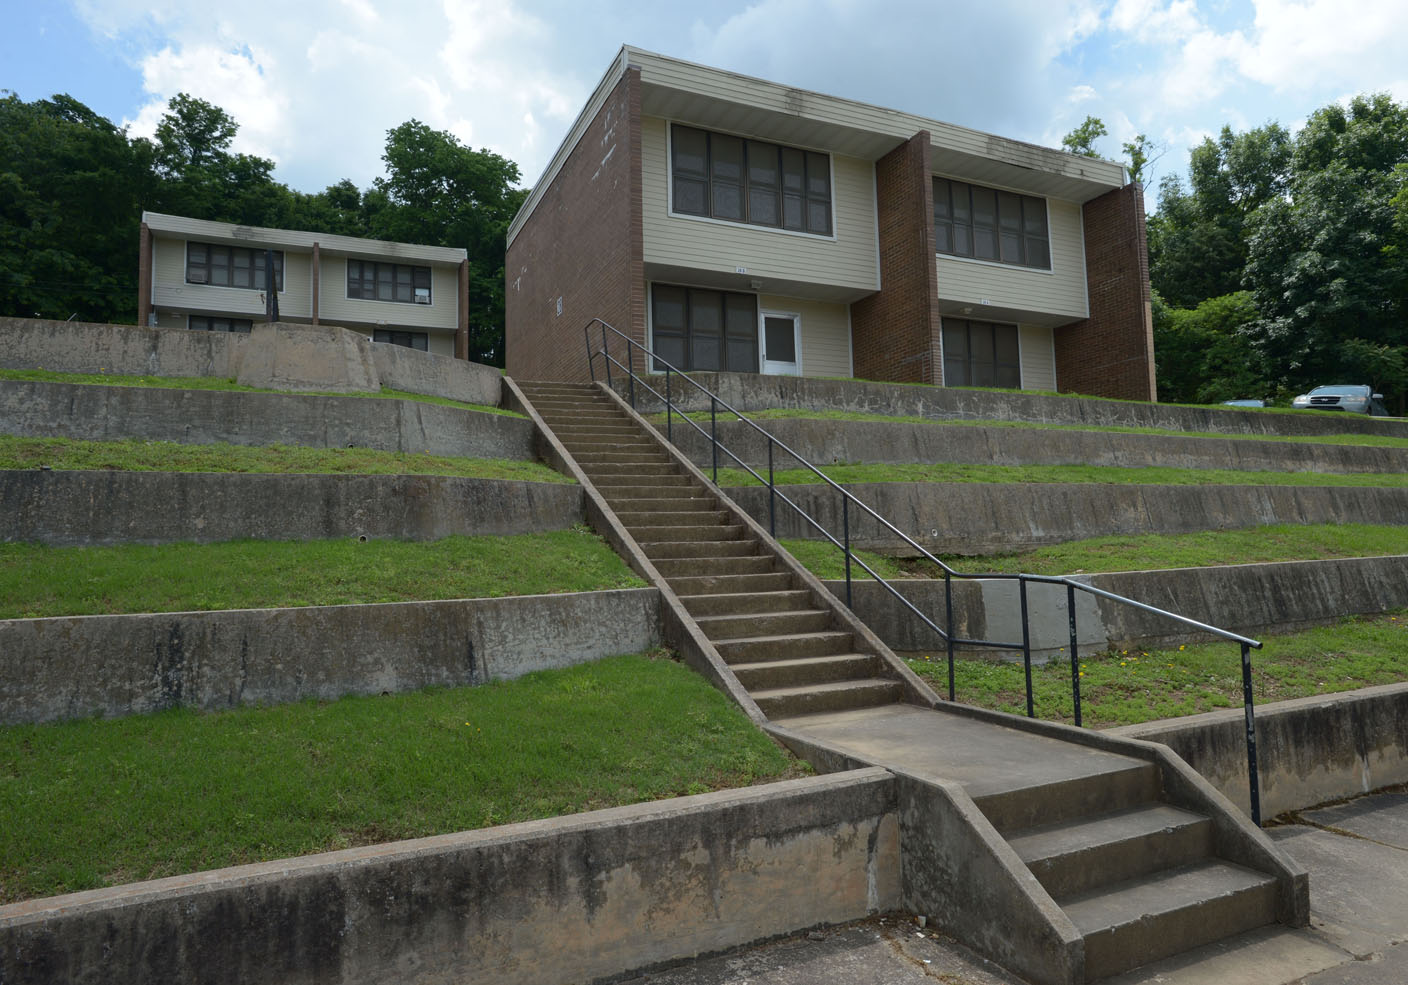 Plan outlines landscaping, facade improvements at Willow Heights in Fayetteville